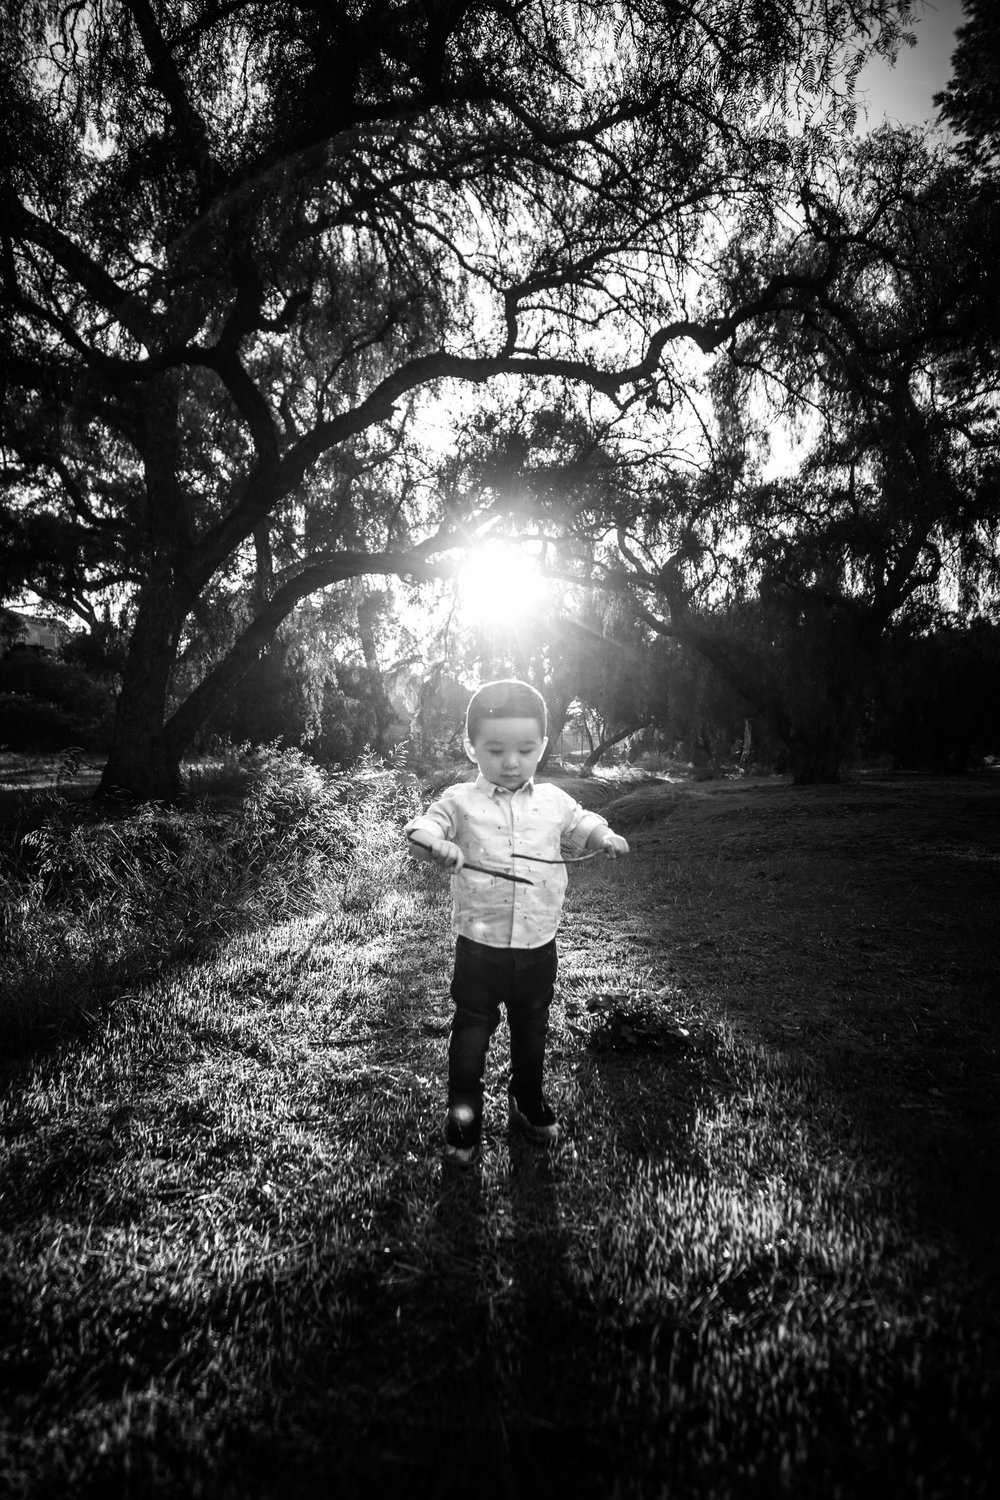 black and white Candid portrait of a little boy playingduring a Family portrait photo shoot in Fullerton on the Juanita Cooke Hiking Trail with green trees and grass and the golden hour sun